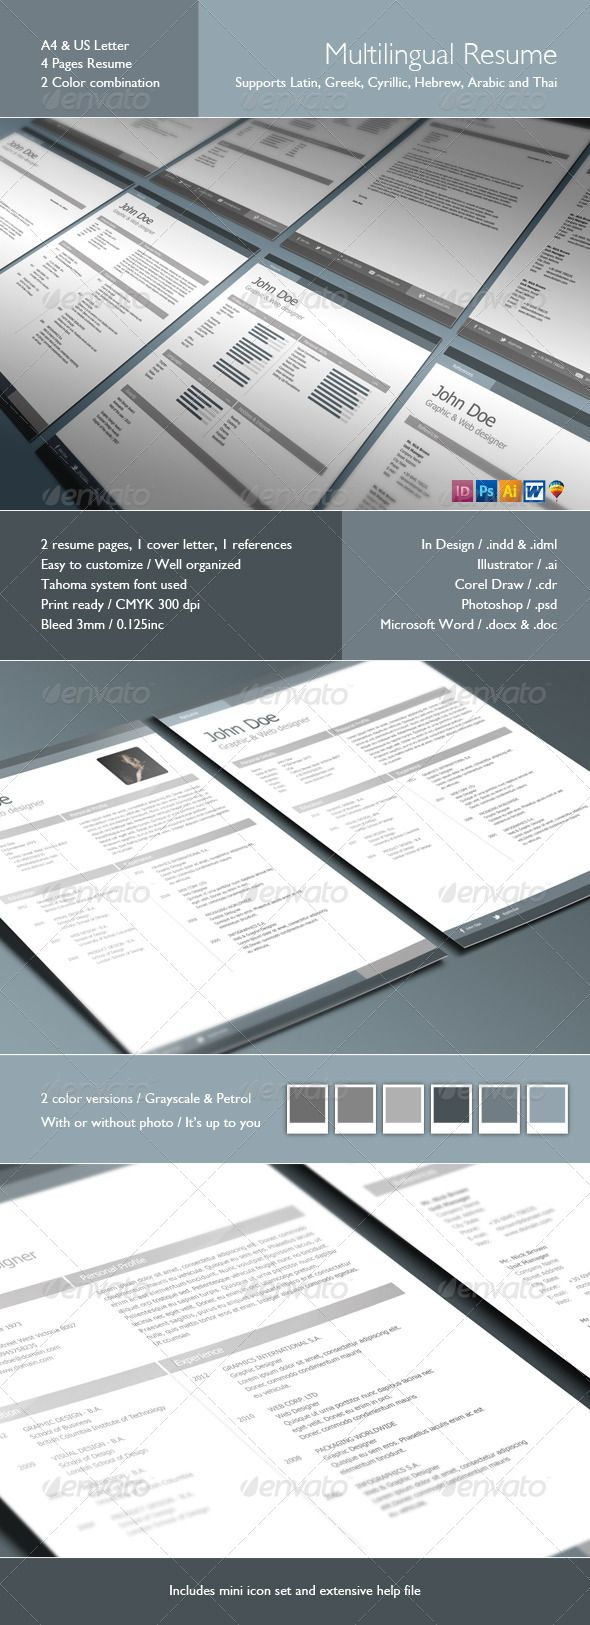 References Page Resume Multilingual Resume  Pinterest  Simple Resume Template Cv Resume .